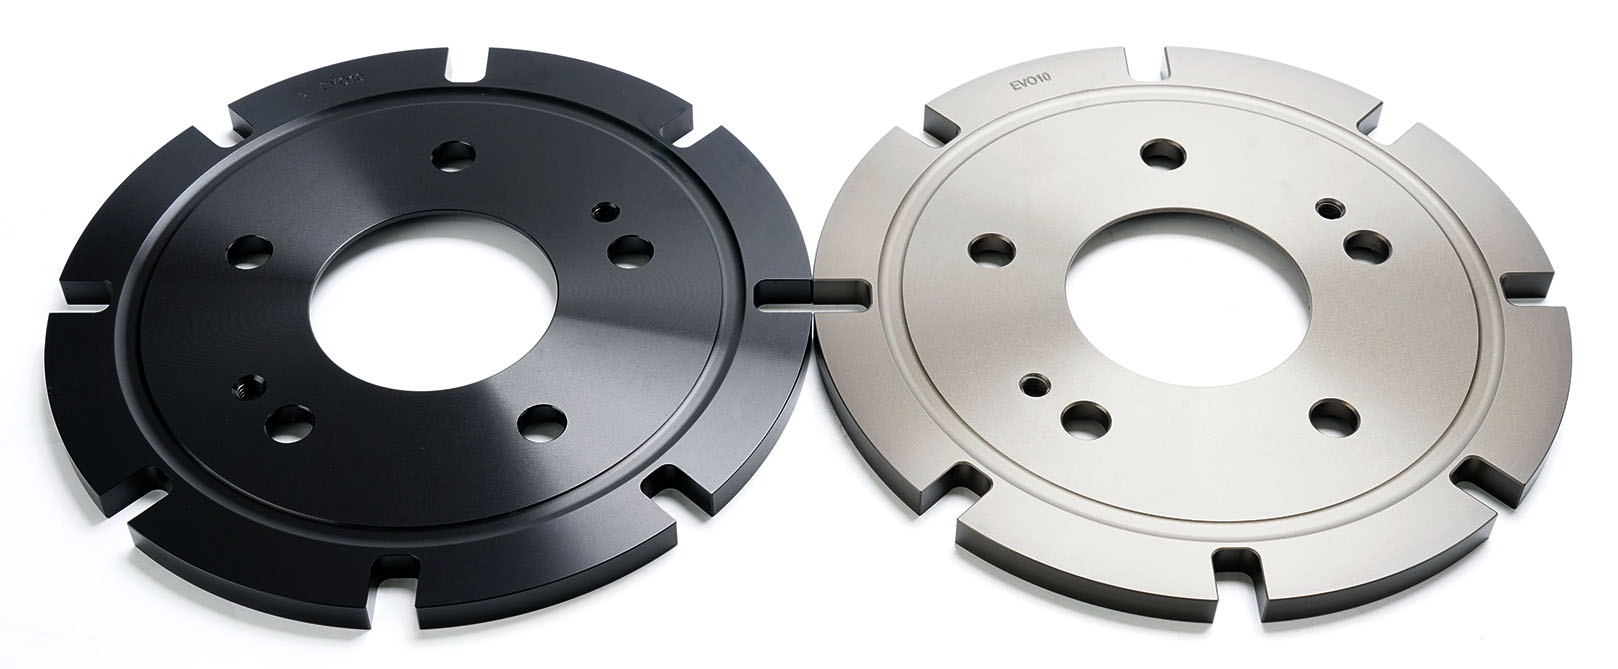 black-hard-anodized-aluminum-mounting-hub.jpg